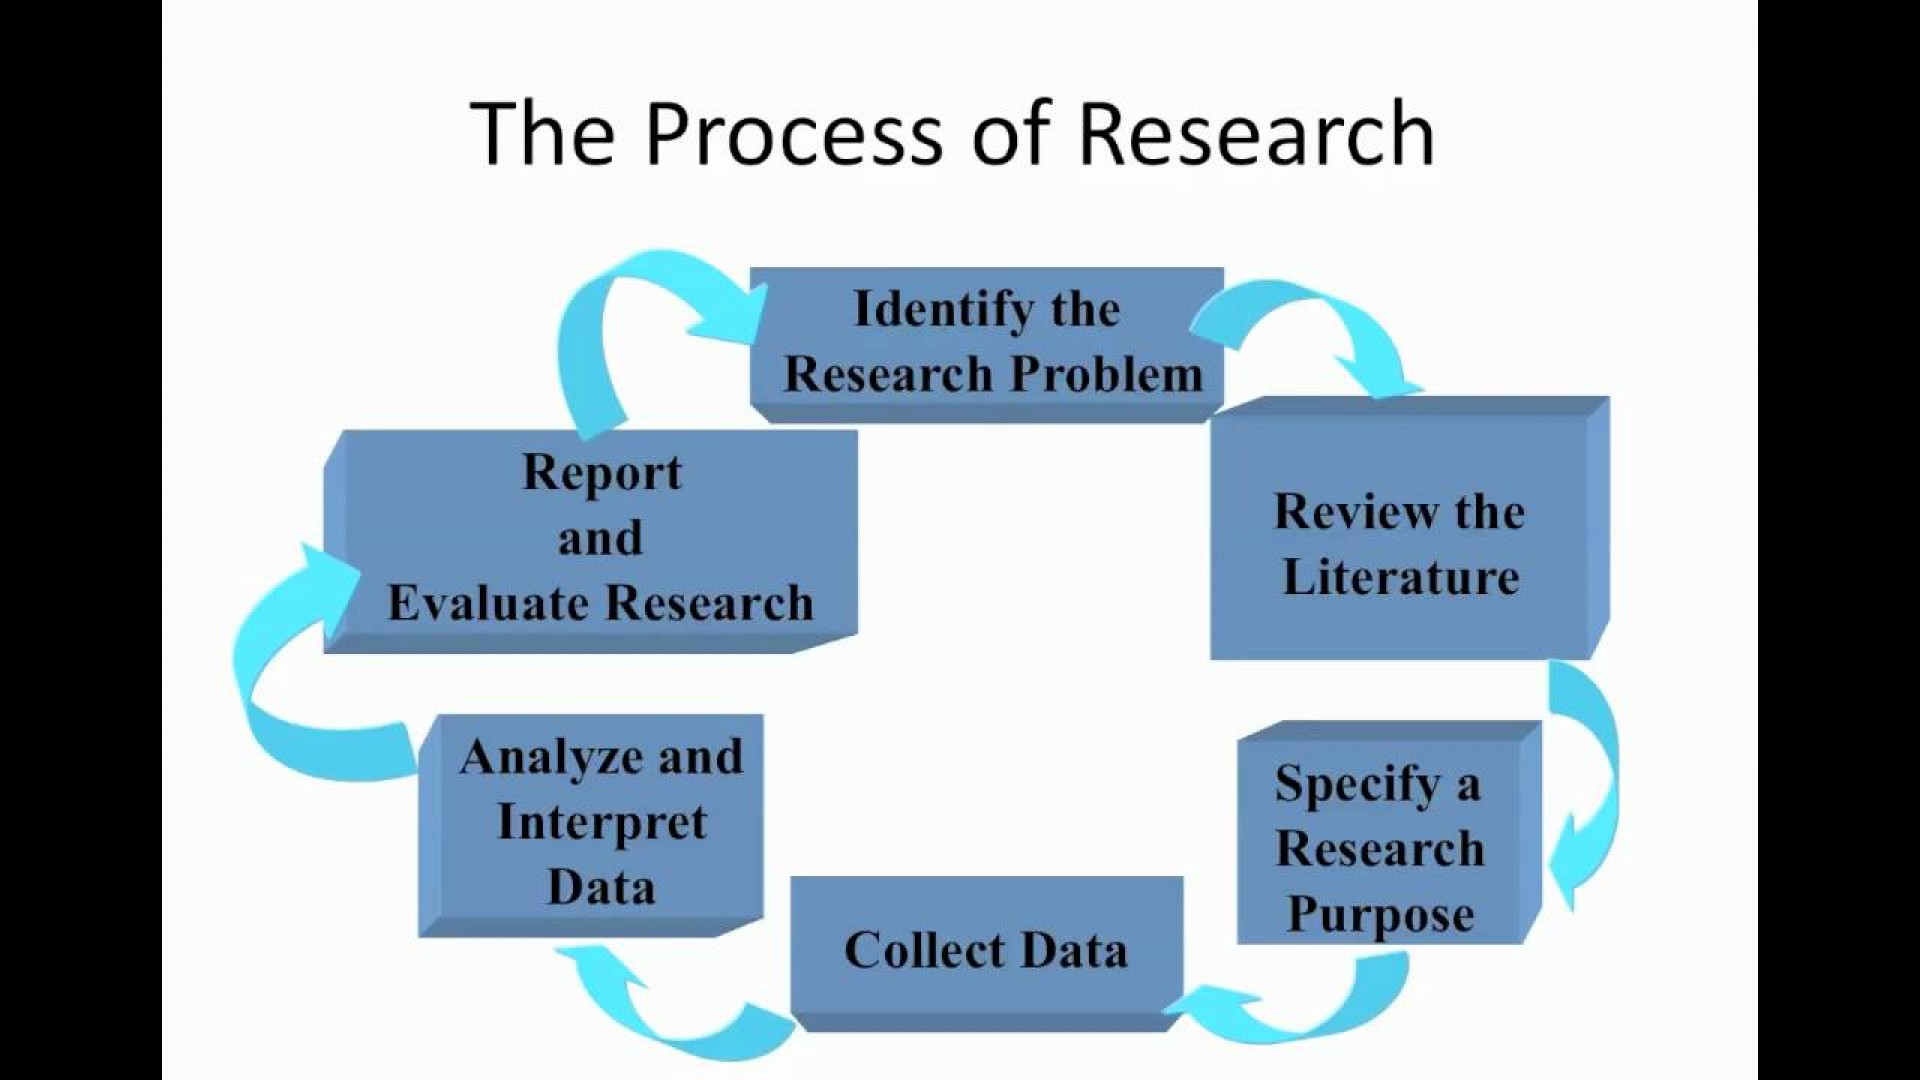 009 Research Paper Process2bof2bresearch Academic Writing Services In Marvelous India Best 1920